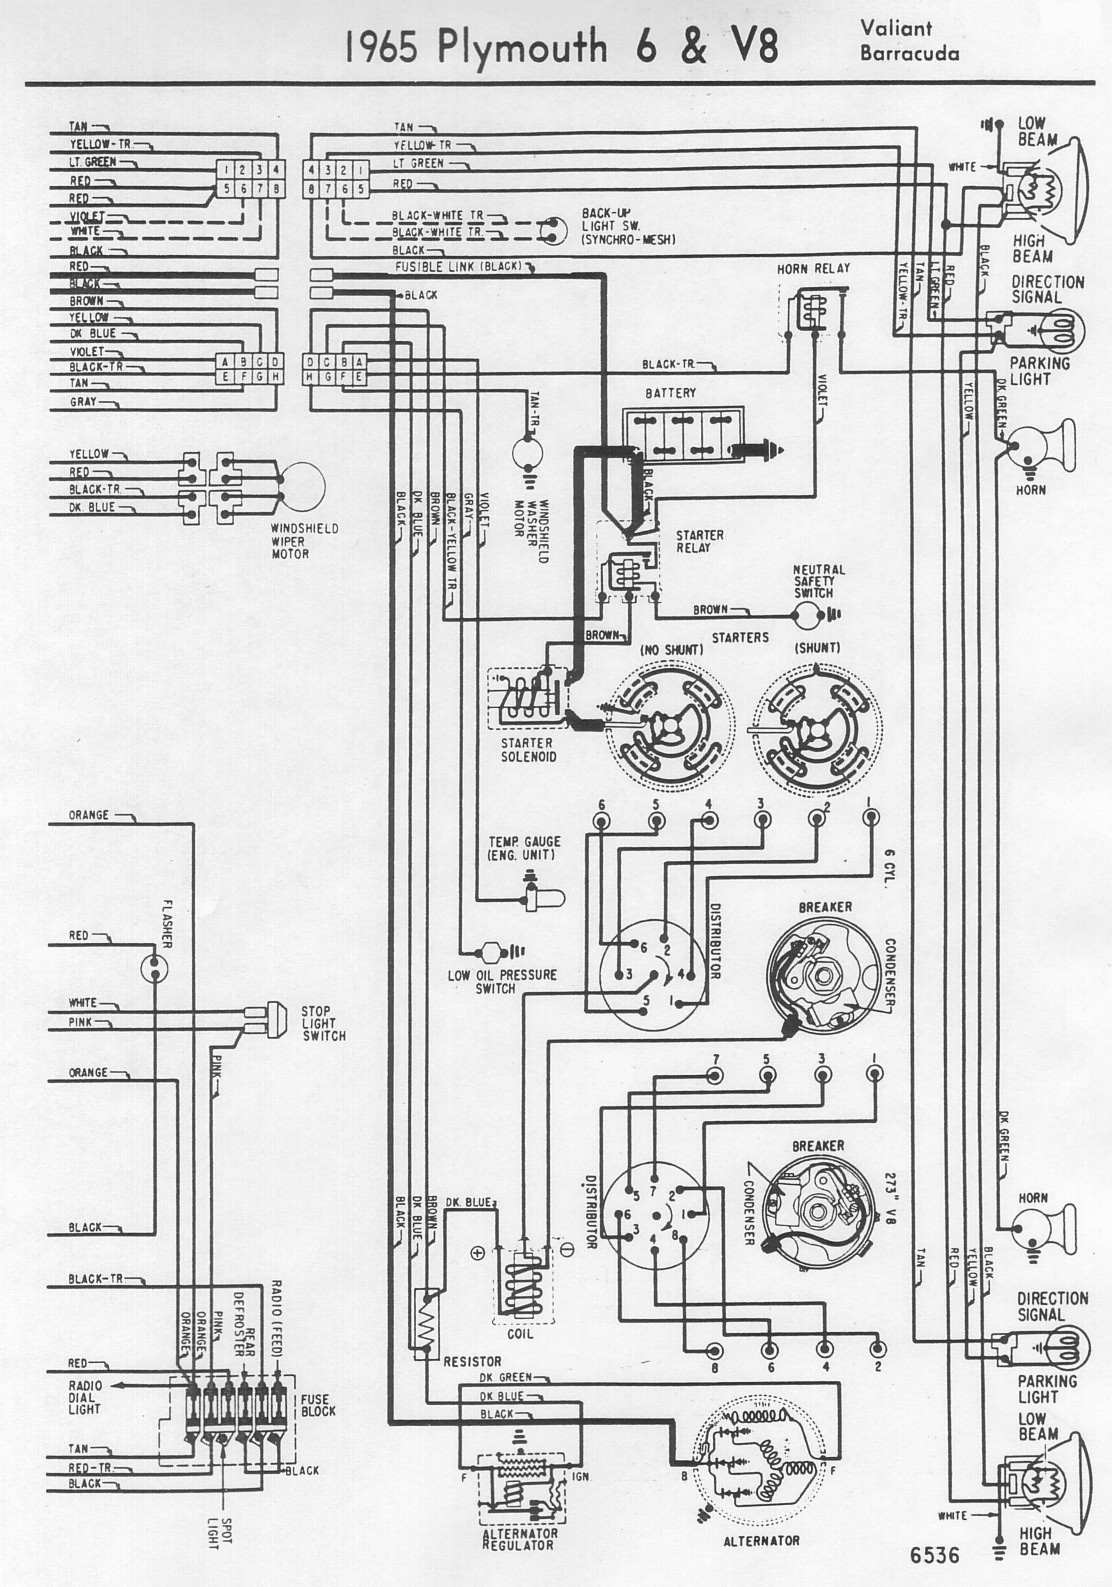 Free Auto Wiring Diagram  1965 Plymouth Valiant Or Barracuda Engine Compartment Wiring Diagram